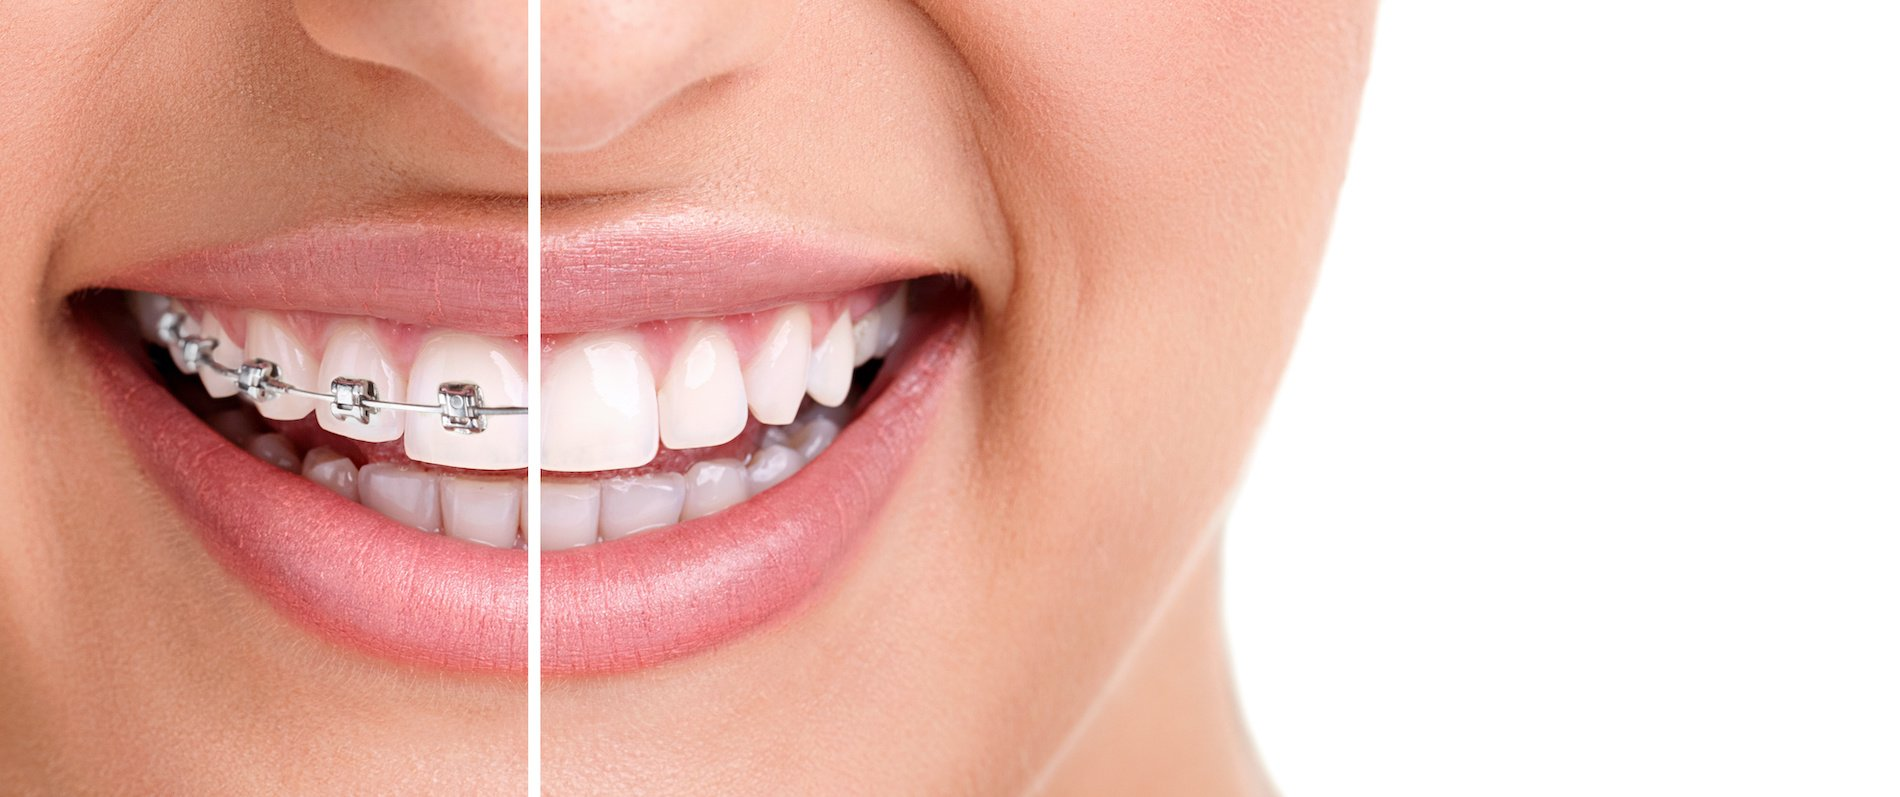 Orthodontics and Braces by PRECiDENT.health